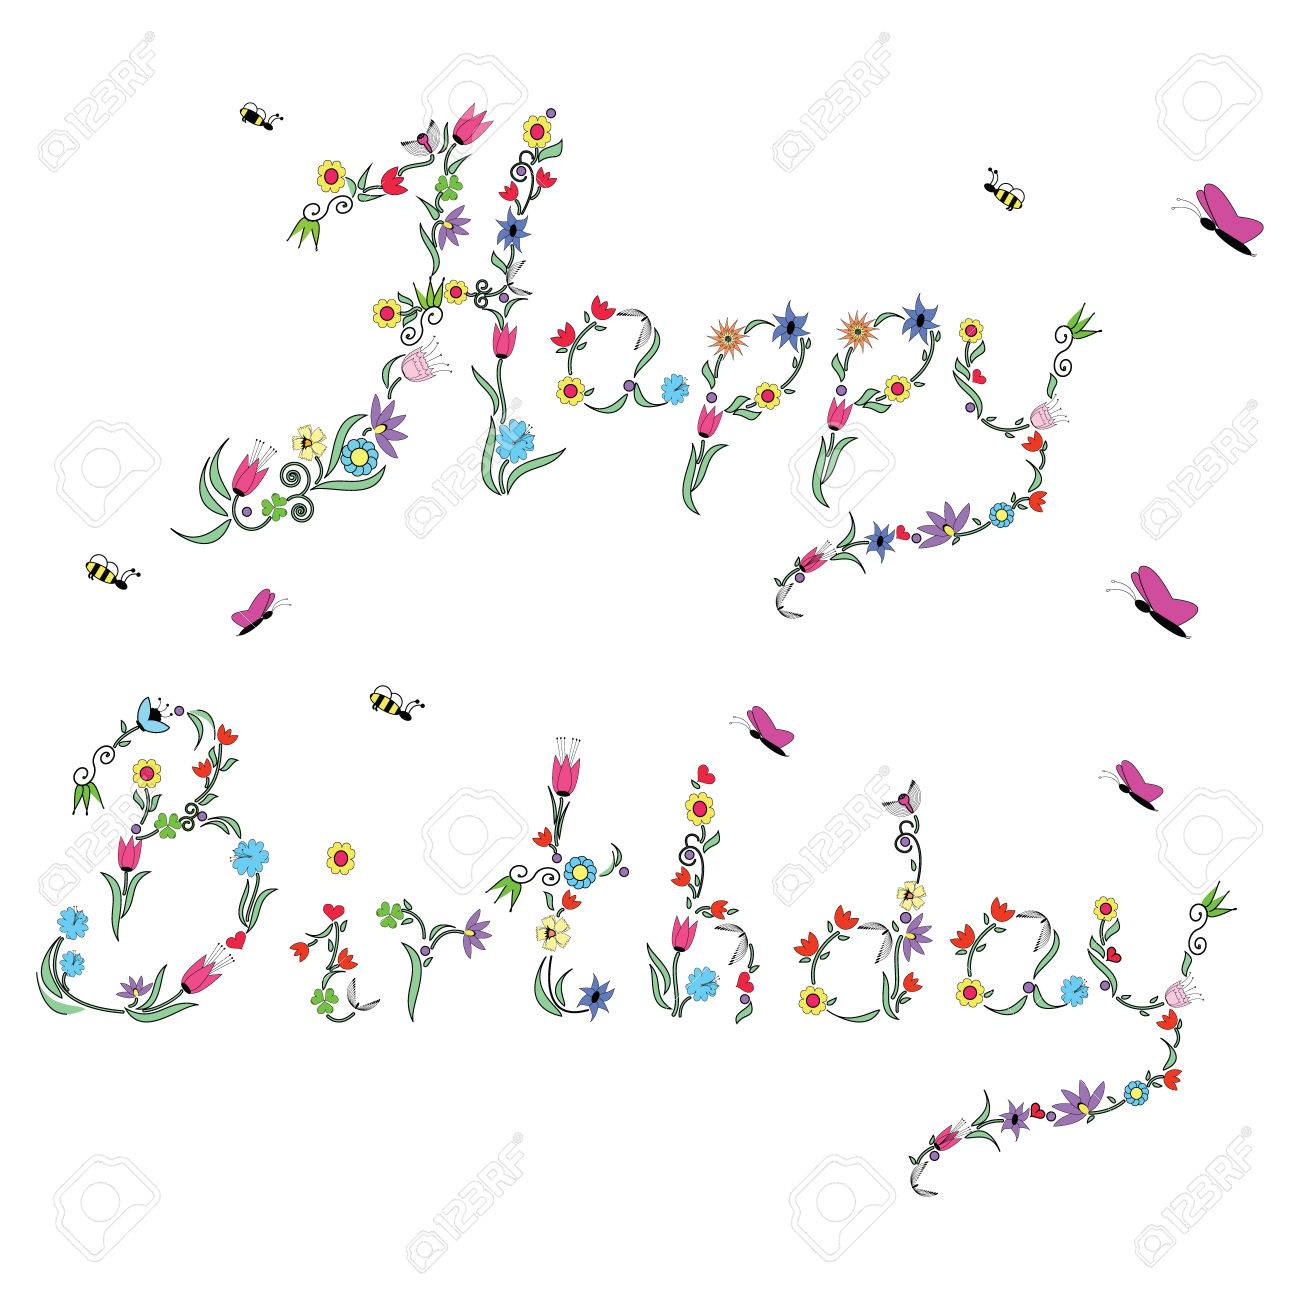 happy birthday sign to color ; 39312232-spring-happy-birthday-sign-in-color-with-floral-elements